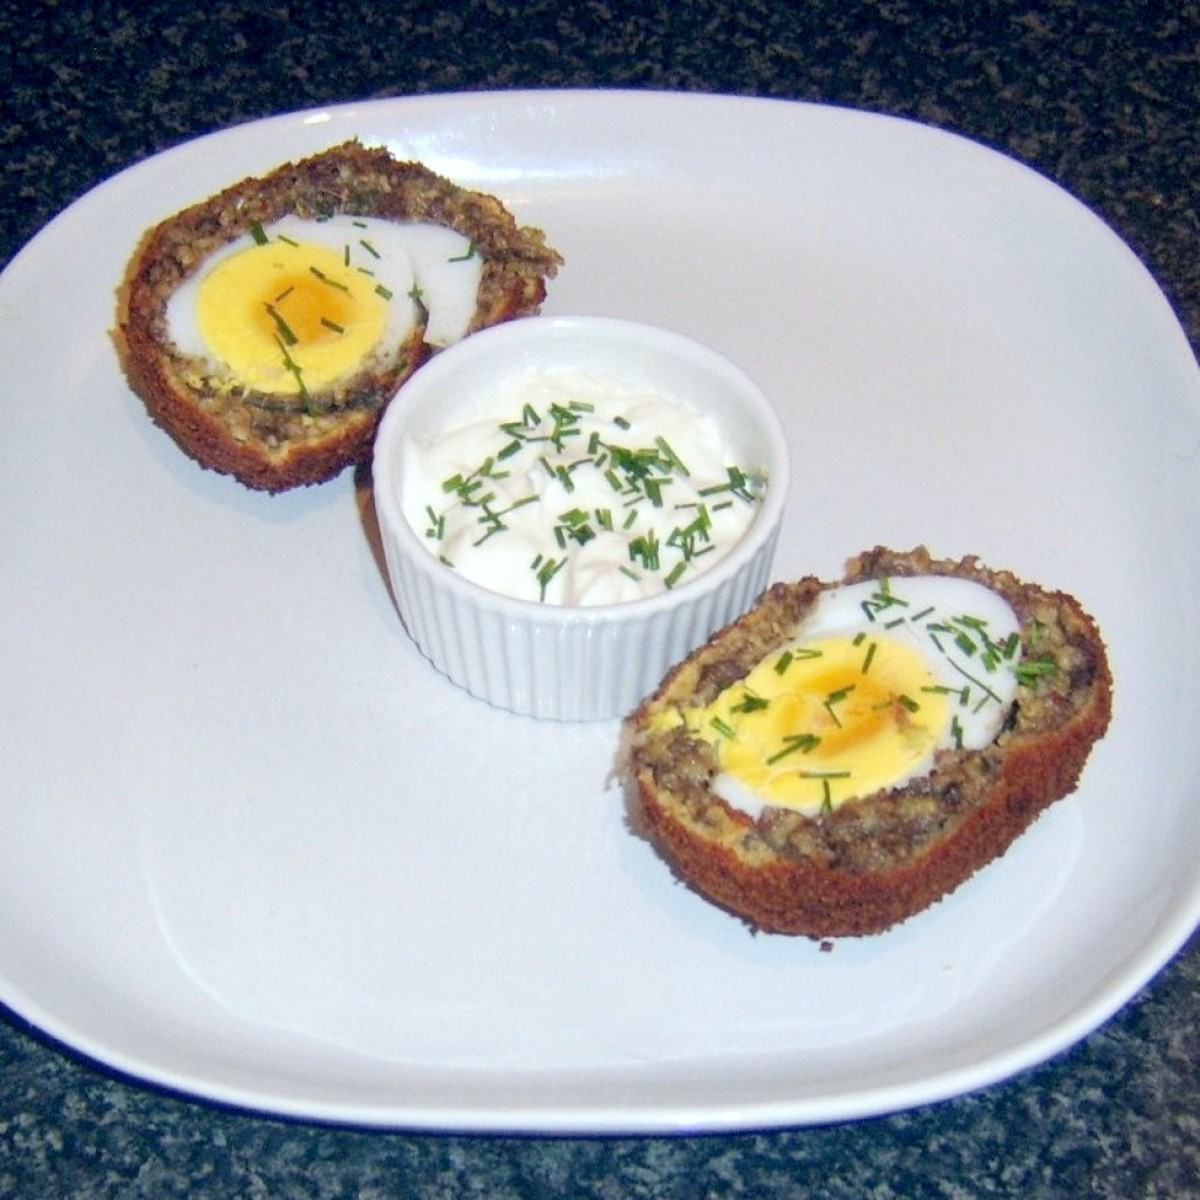 Haggis Scotch duck egg with garlic and chive mayo